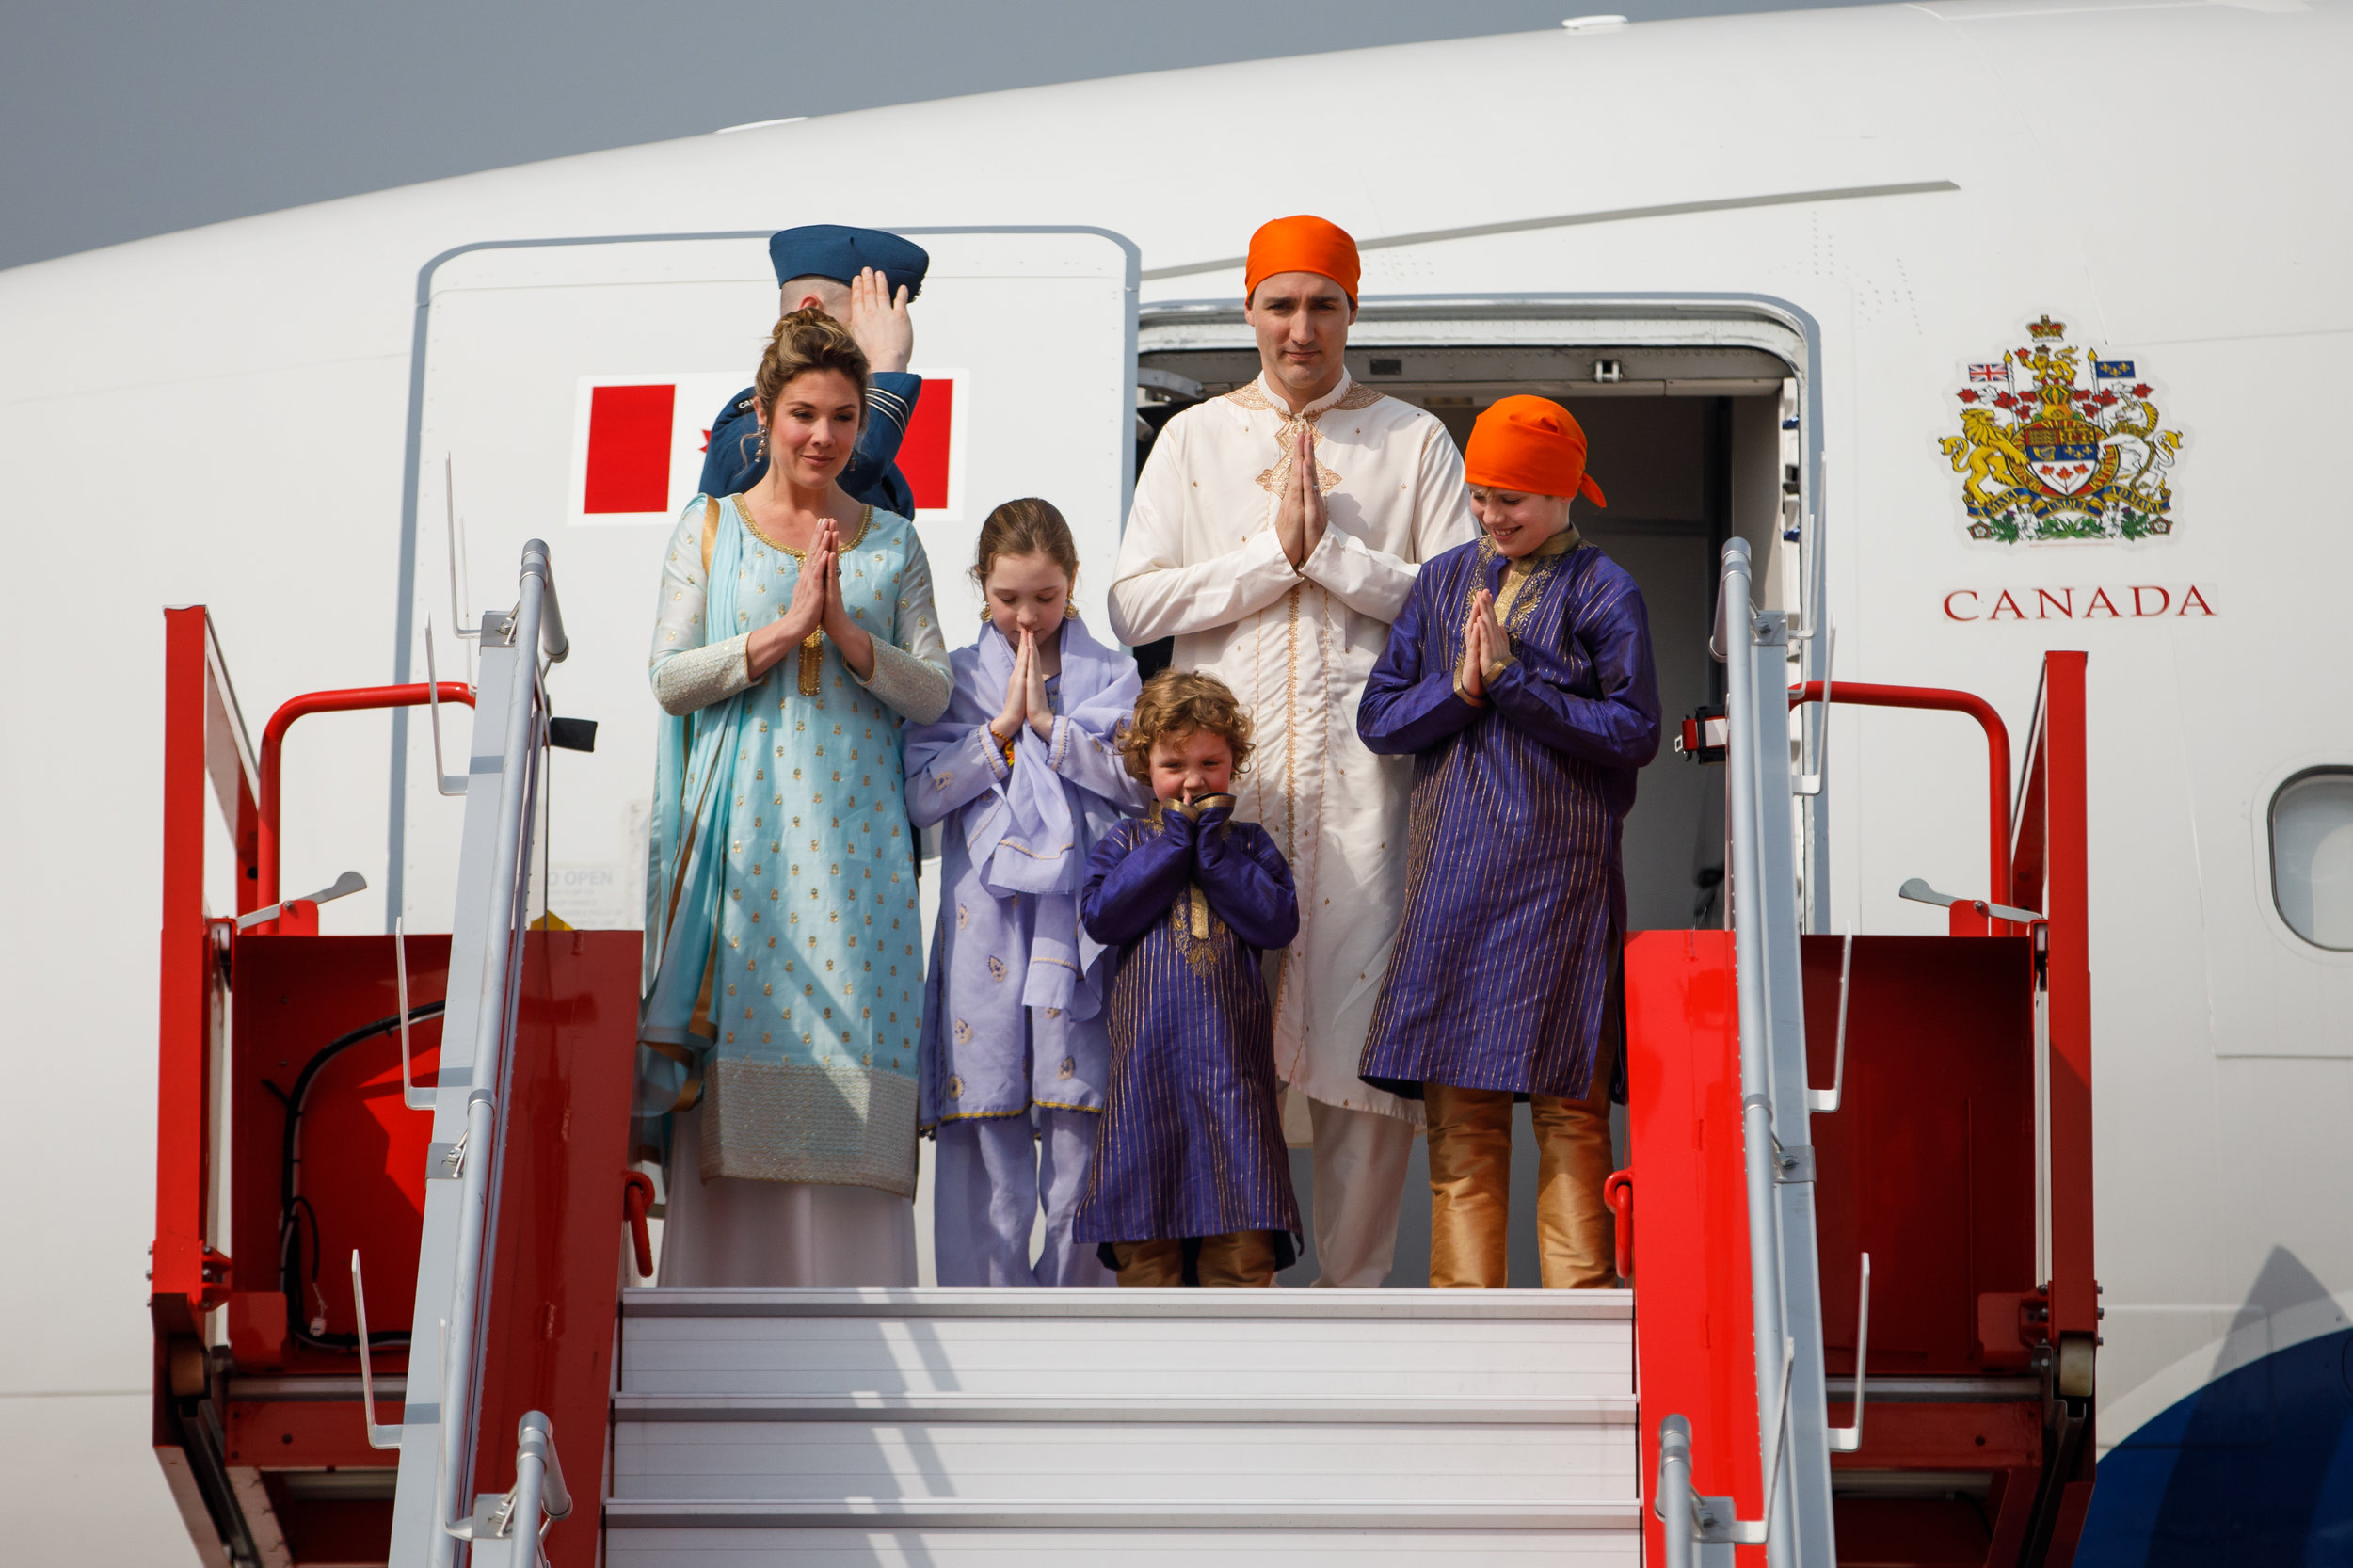 Canadian Prime Minister Justin Trudeau arriving in India with his family in what appeared to be a permanent 'Namaste' pose. Credit: PMO